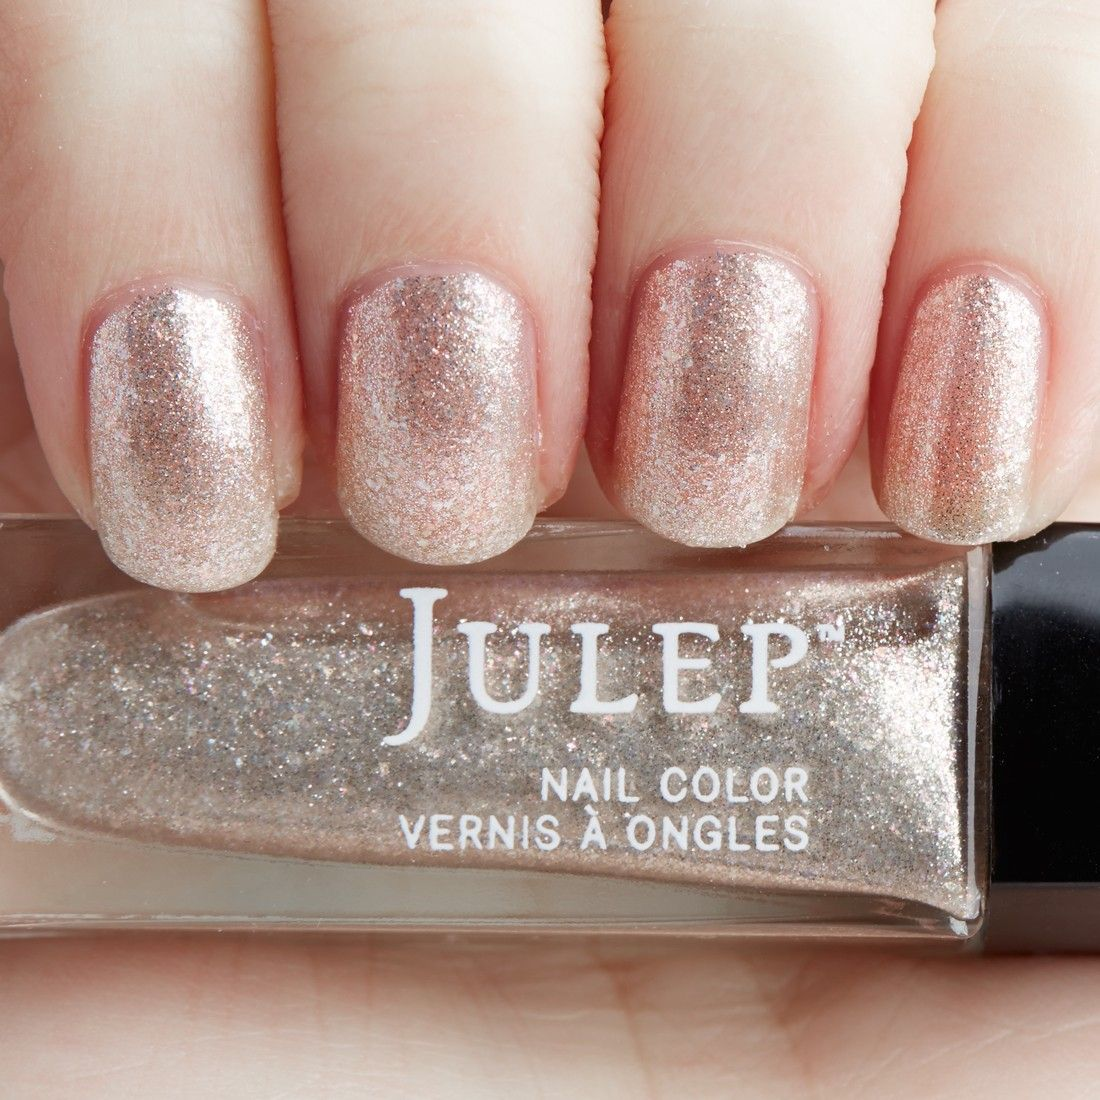 Color Description Moonbeam Iridescent Chromea Fast Drying Long Lasting Nail Polish Ed By Breakthrough Oxygen Technology That Makes Nails Healthy And